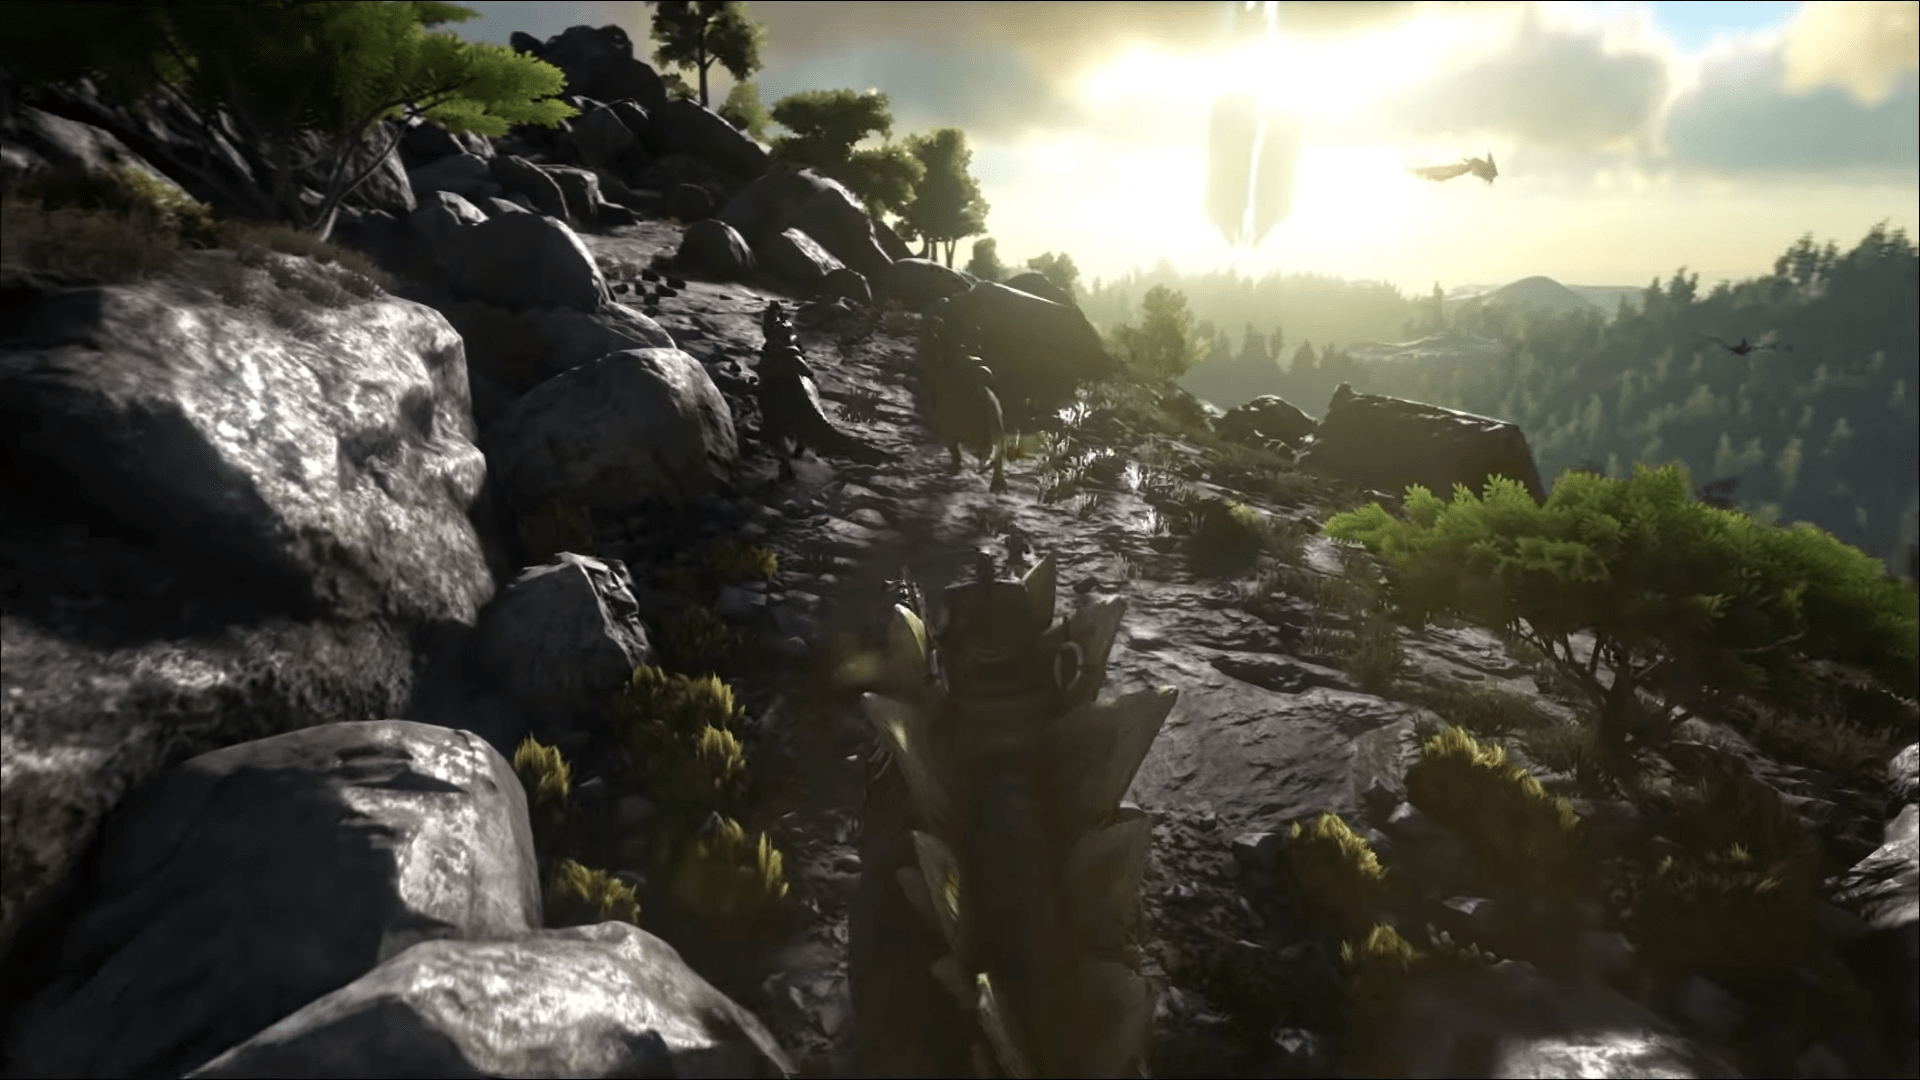 ARK: Survival Evolved Shows A Few More Genesis Screenshots With Some Disappointing News